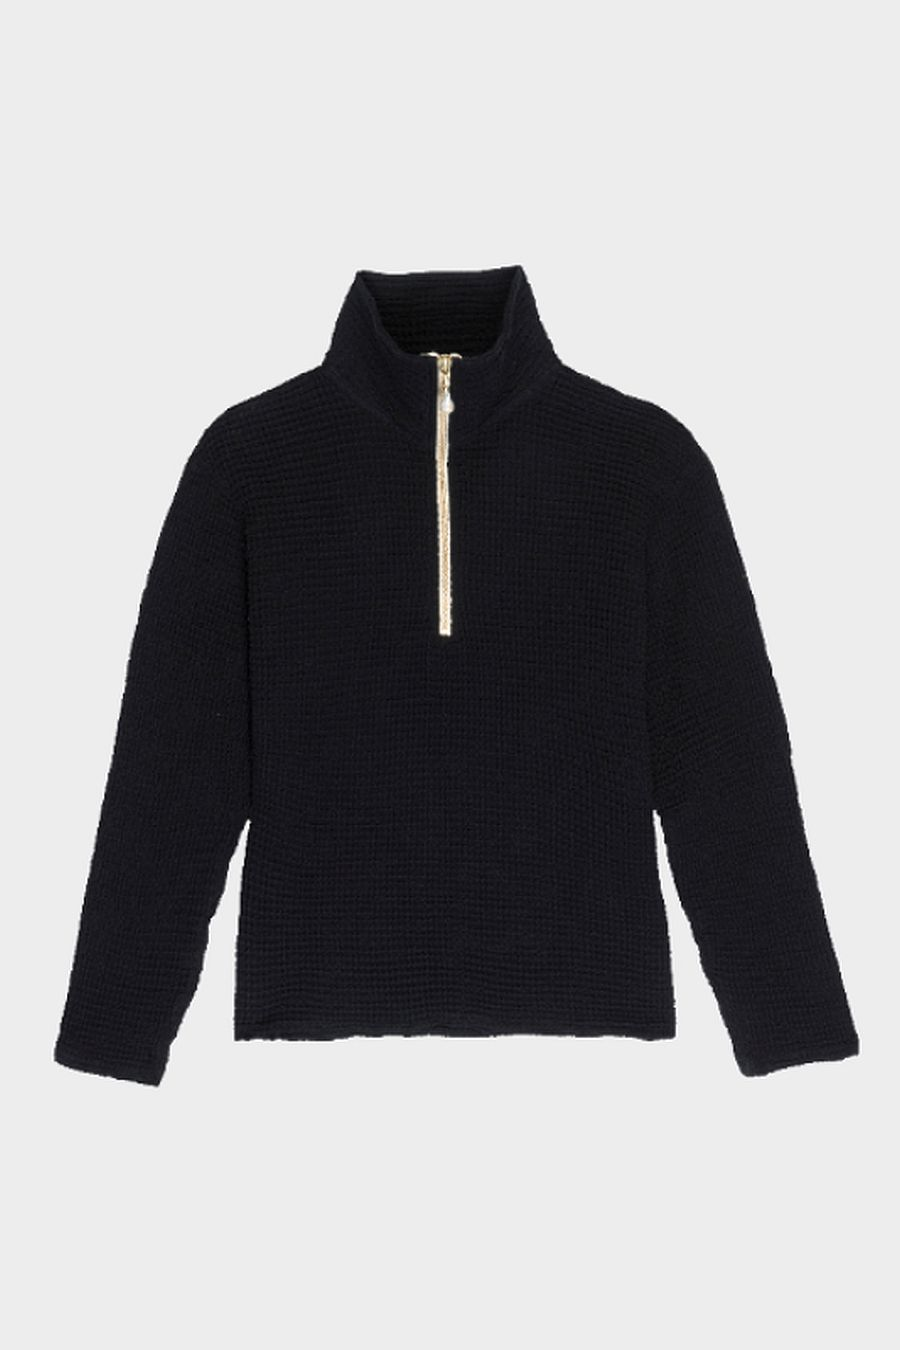 DONNI. Waffle 1/2 Zip Pullover - Jet